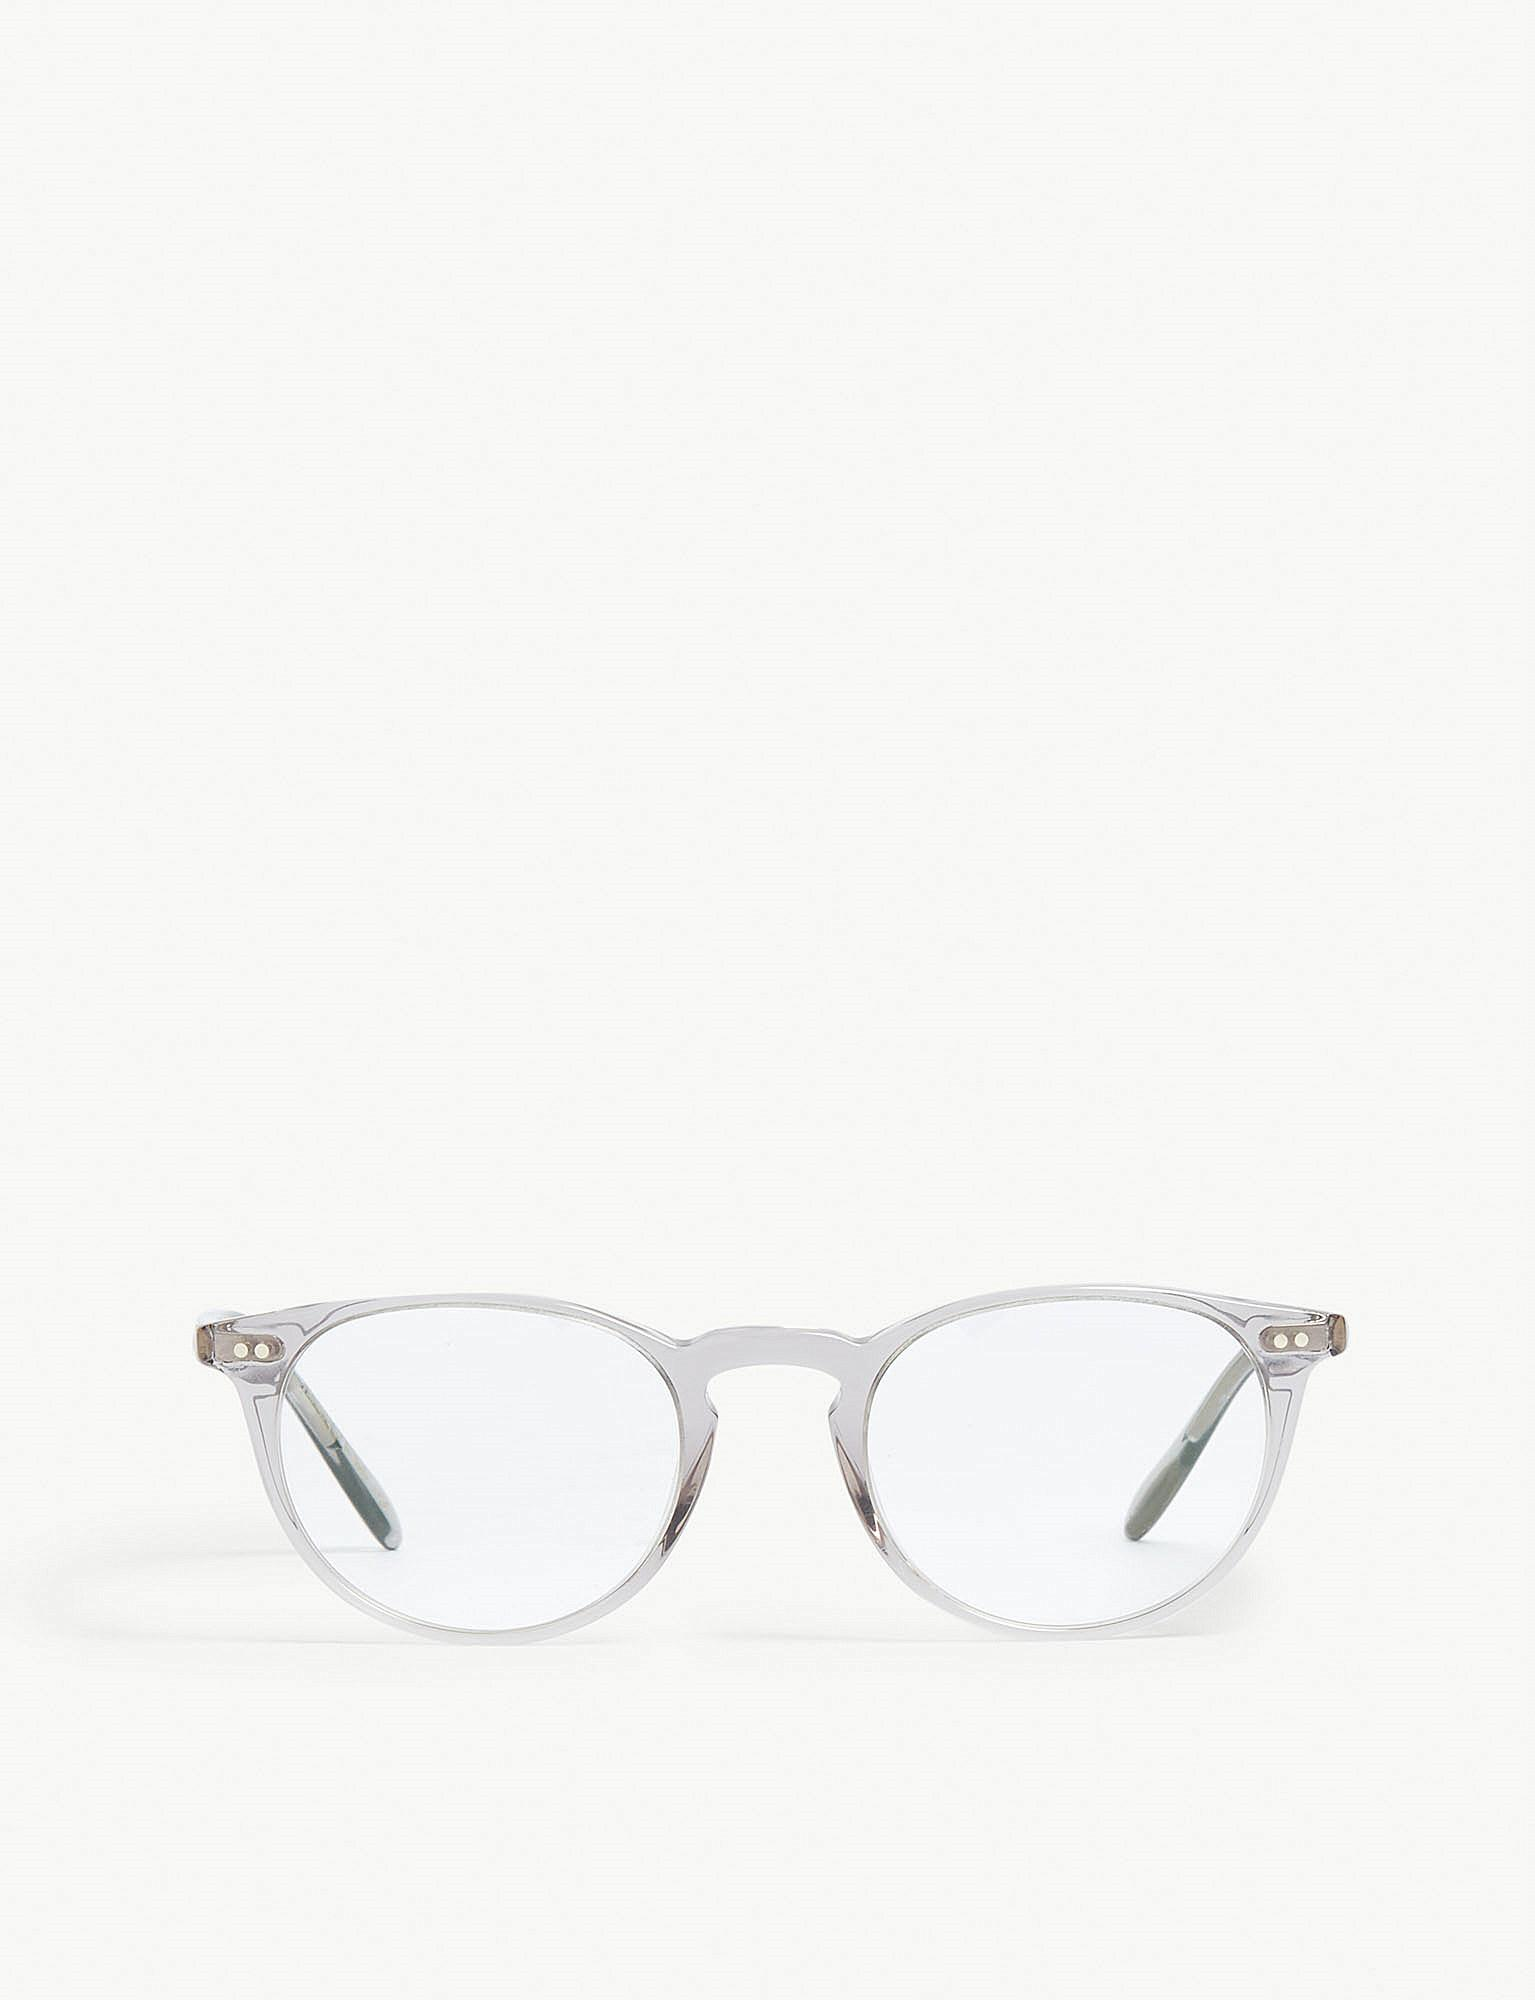 47a3ef7f932 Oliver Peoples Riley-r Phantos-frame Optical Glasses in Gray - Lyst